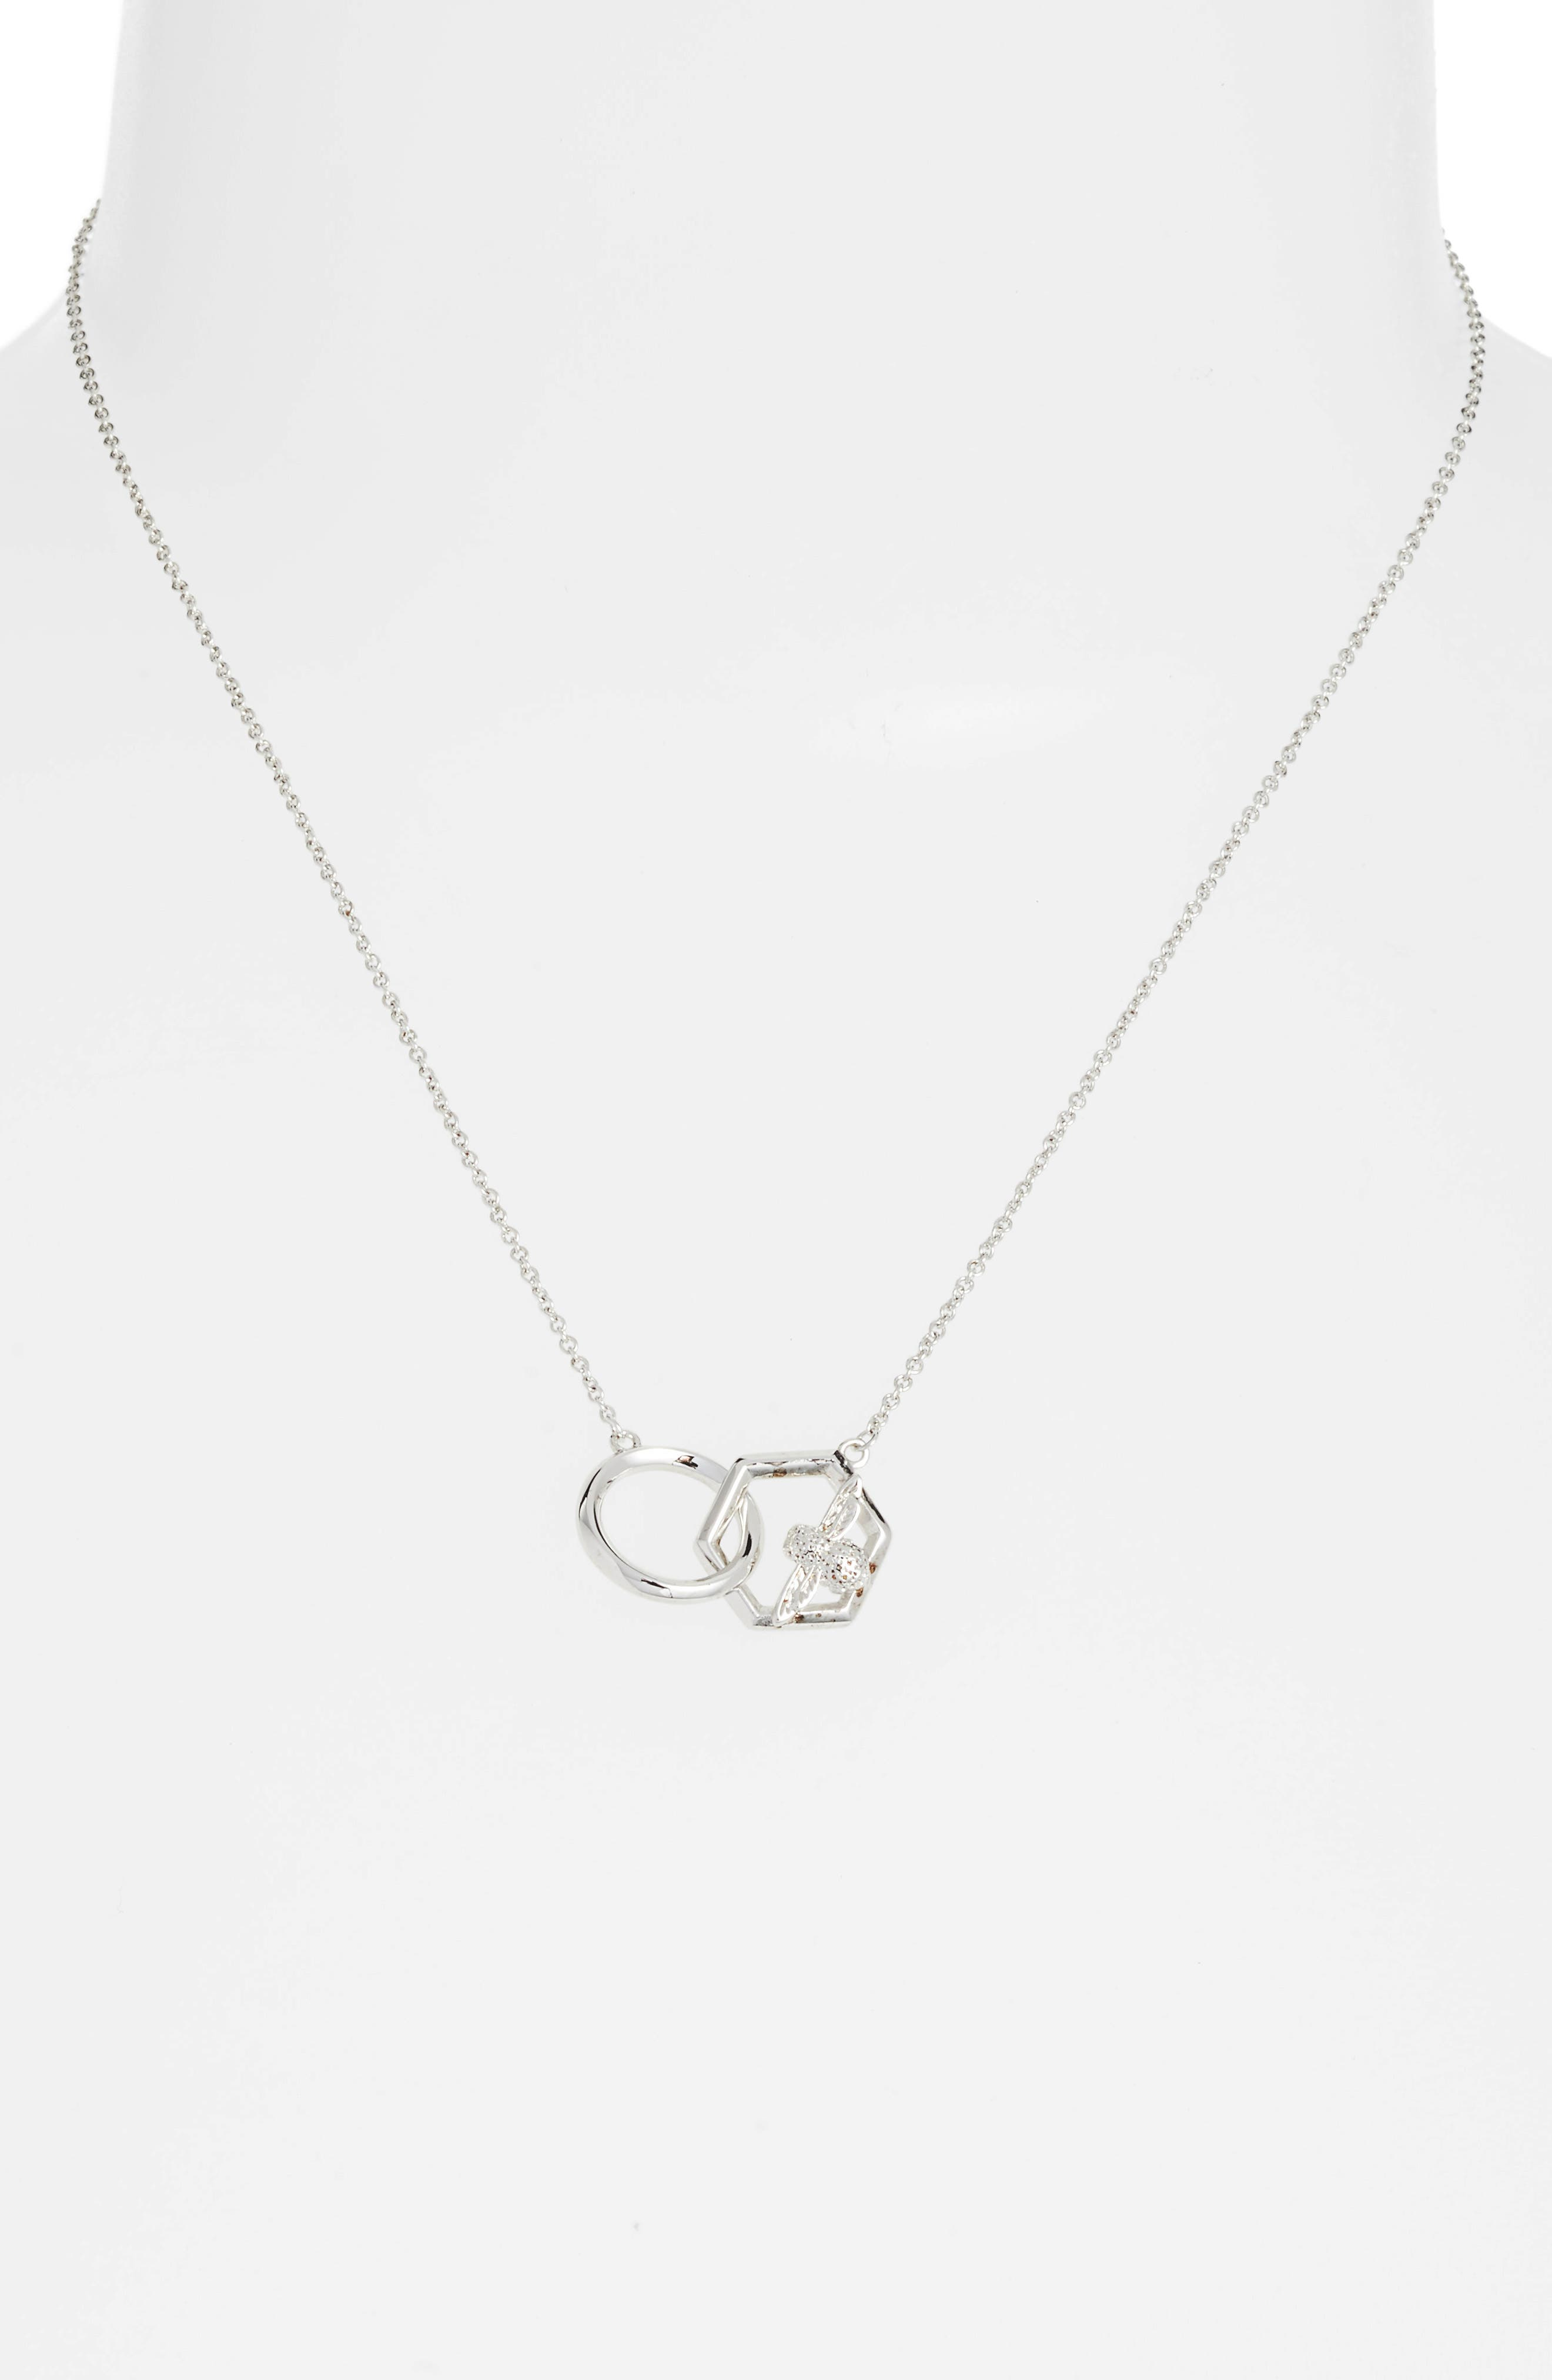 Honeycomb Bee Necklace,                             Alternate thumbnail 2, color,                             Silver